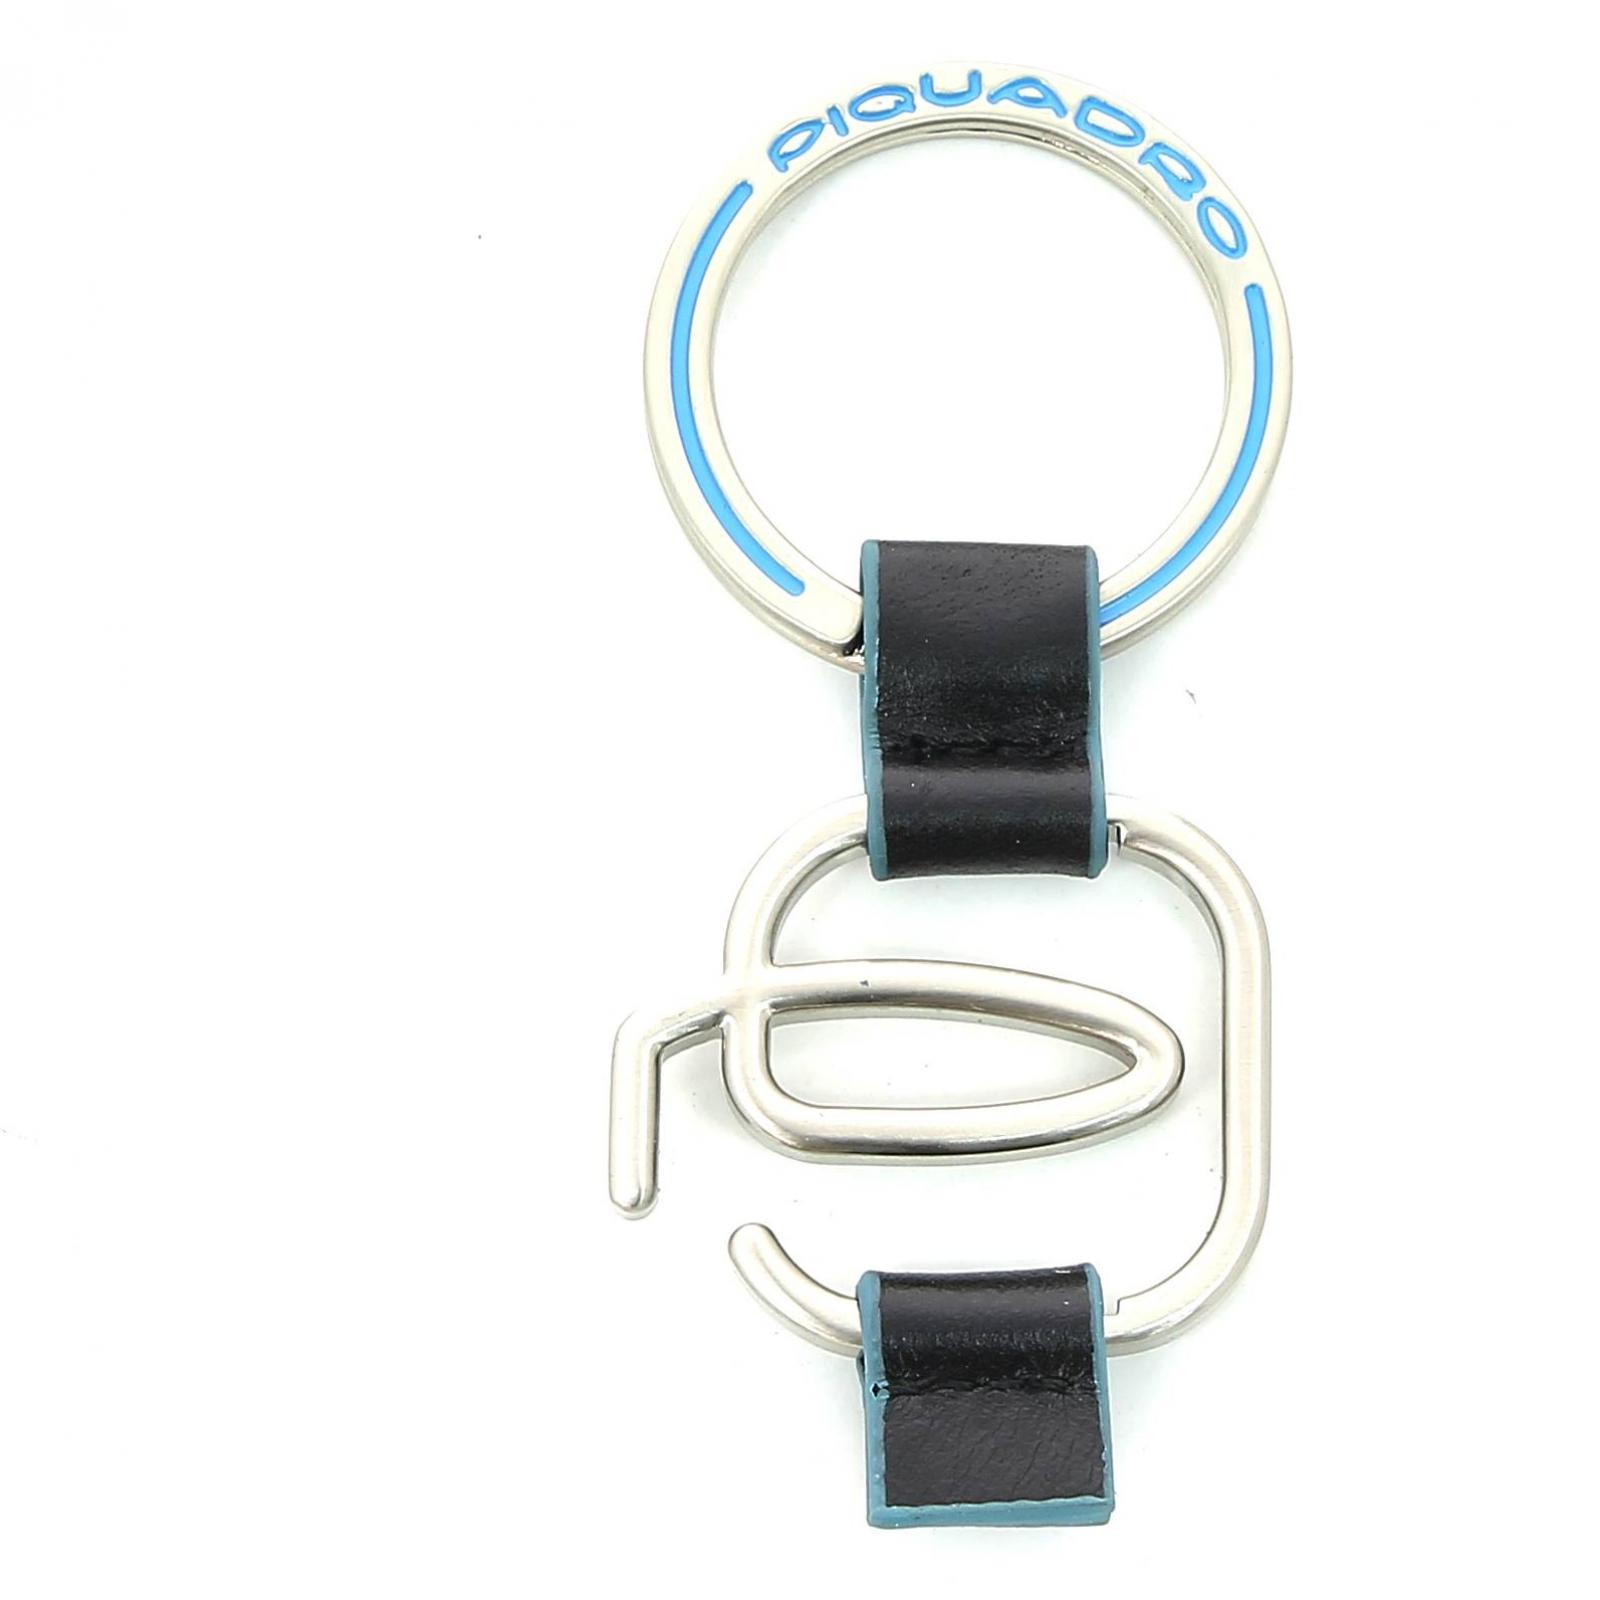 Blue Square B2 Key Holder